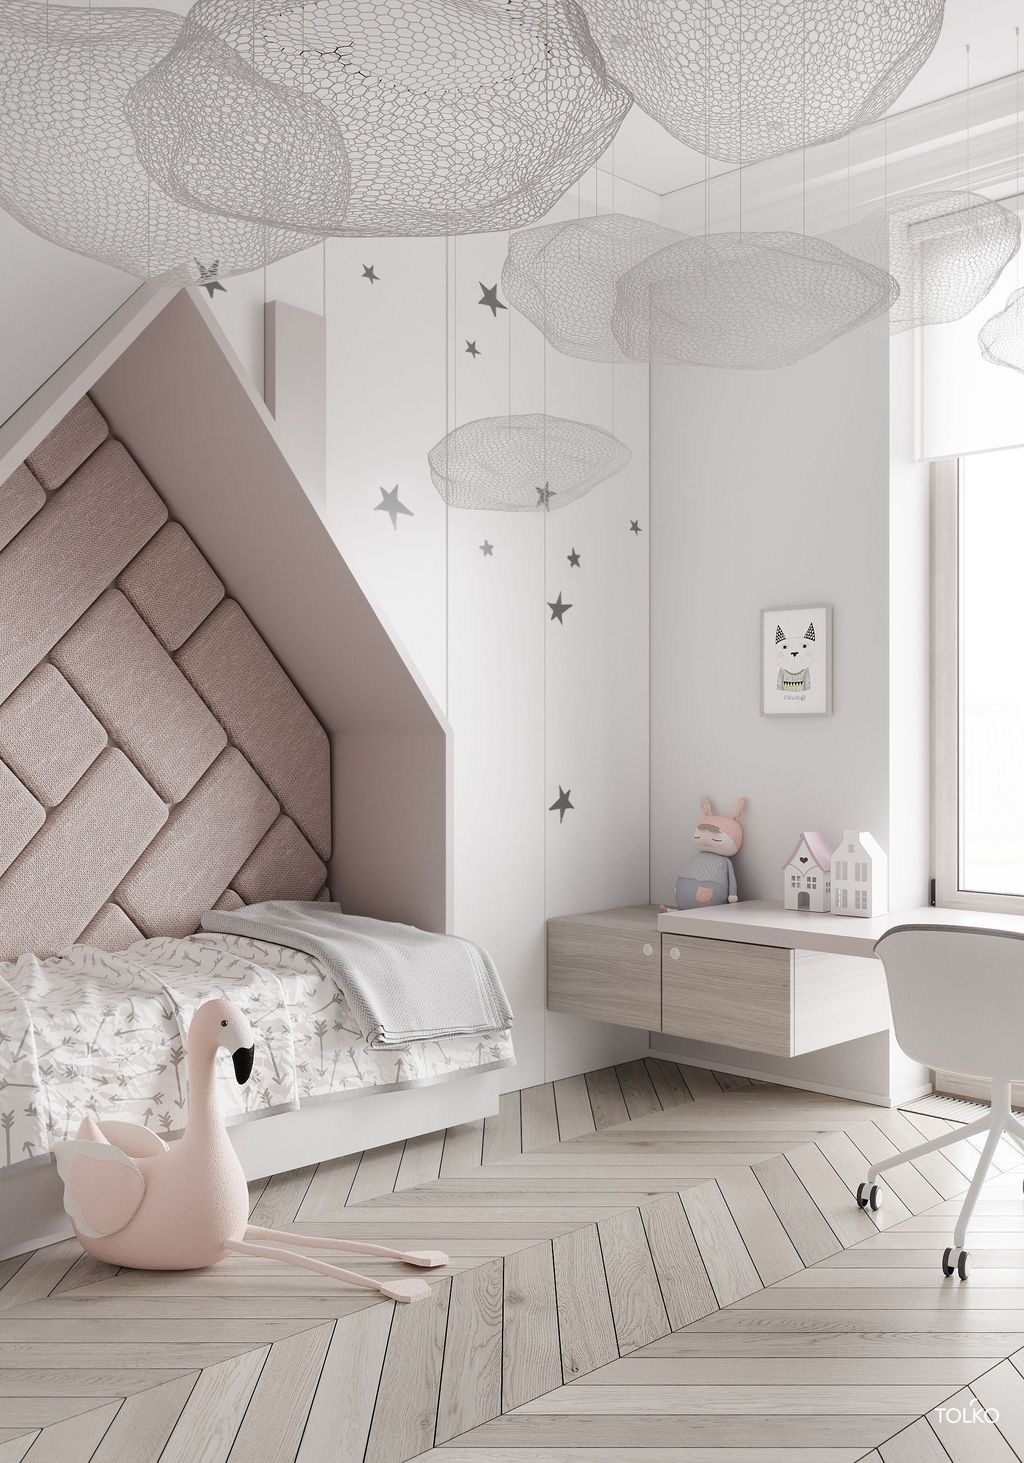 Inspiring Kids Room Design Ideas 14